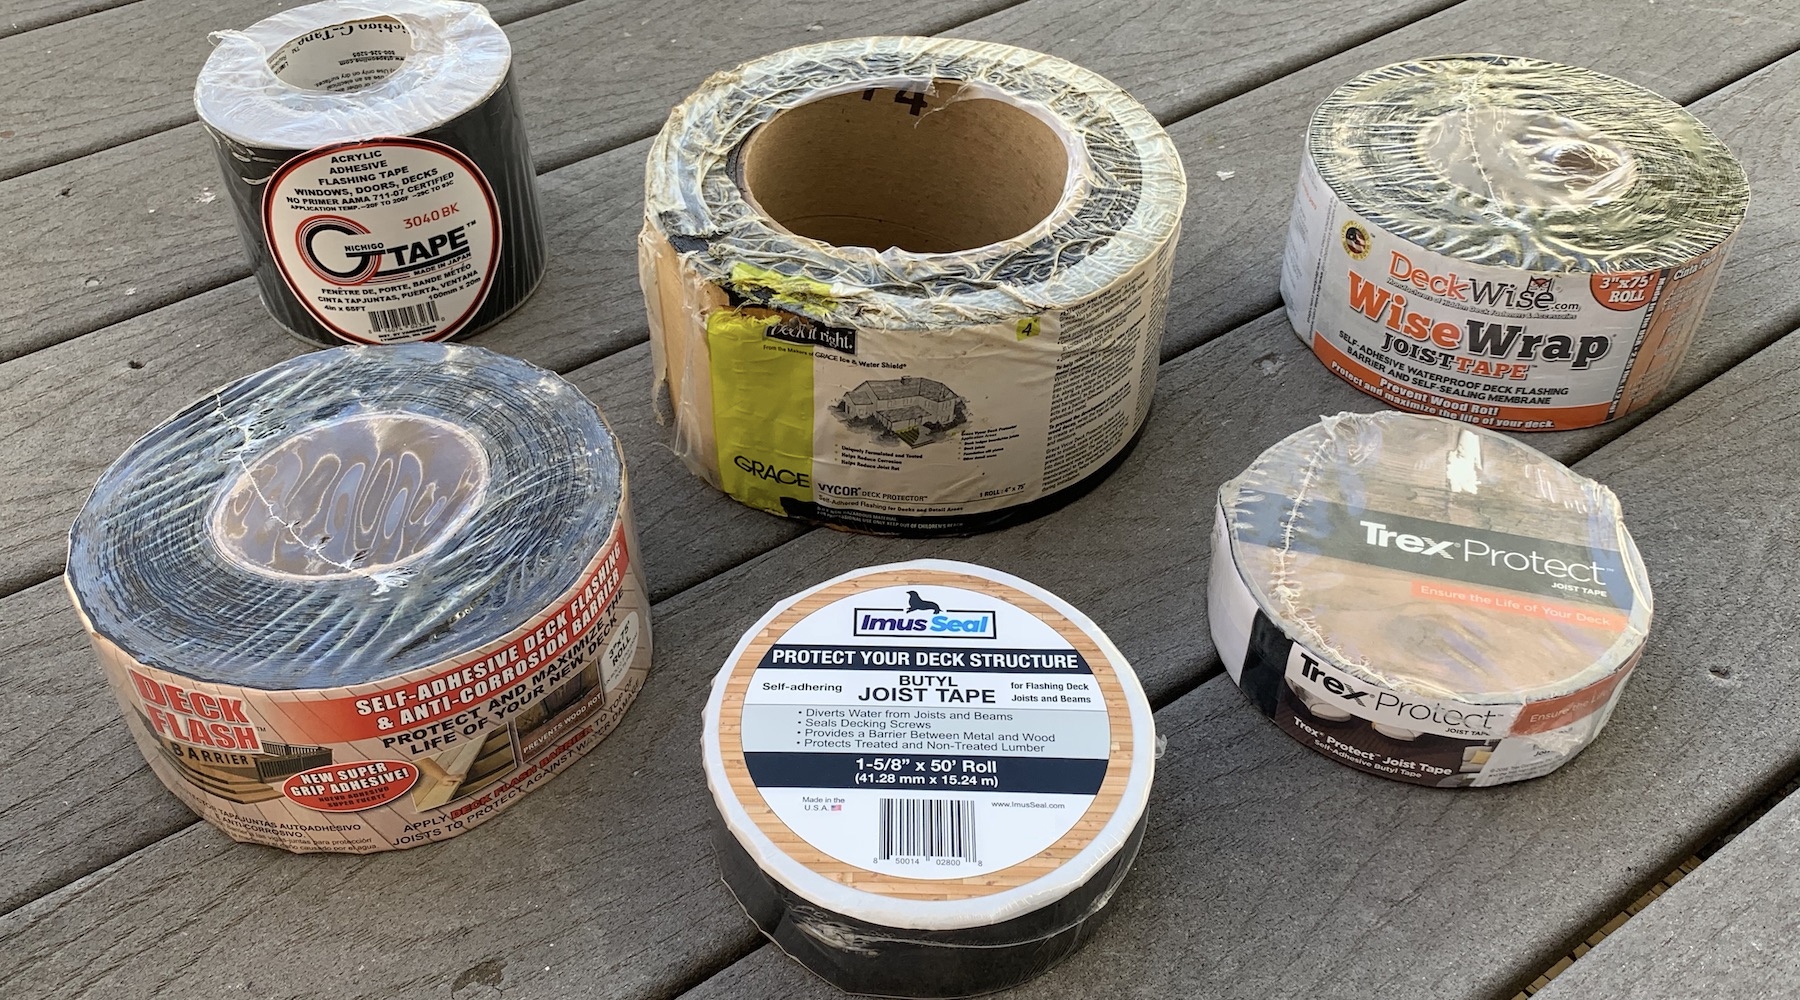 Joist and beam tapes for deck flashing including Imus Seal Butyl Joist Tape, Trex Protect, Nichigo G-Tape 3040BK, DeckWise WiseWrap JoistTape, Cofair Products Deck Flash Barrier, and Grace Vycor Deck Protector